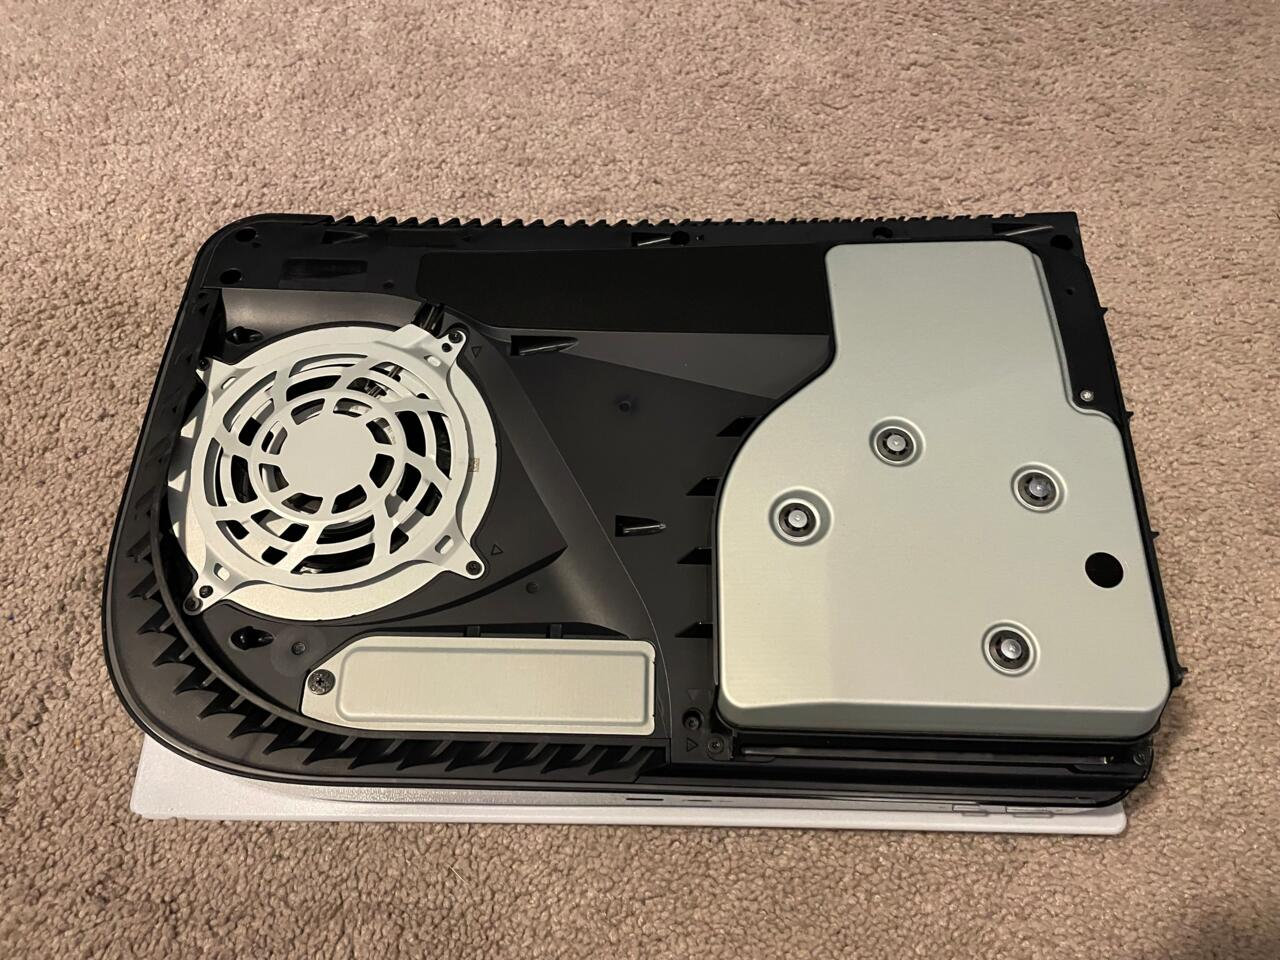 Bottom of the PS5 with the panel off